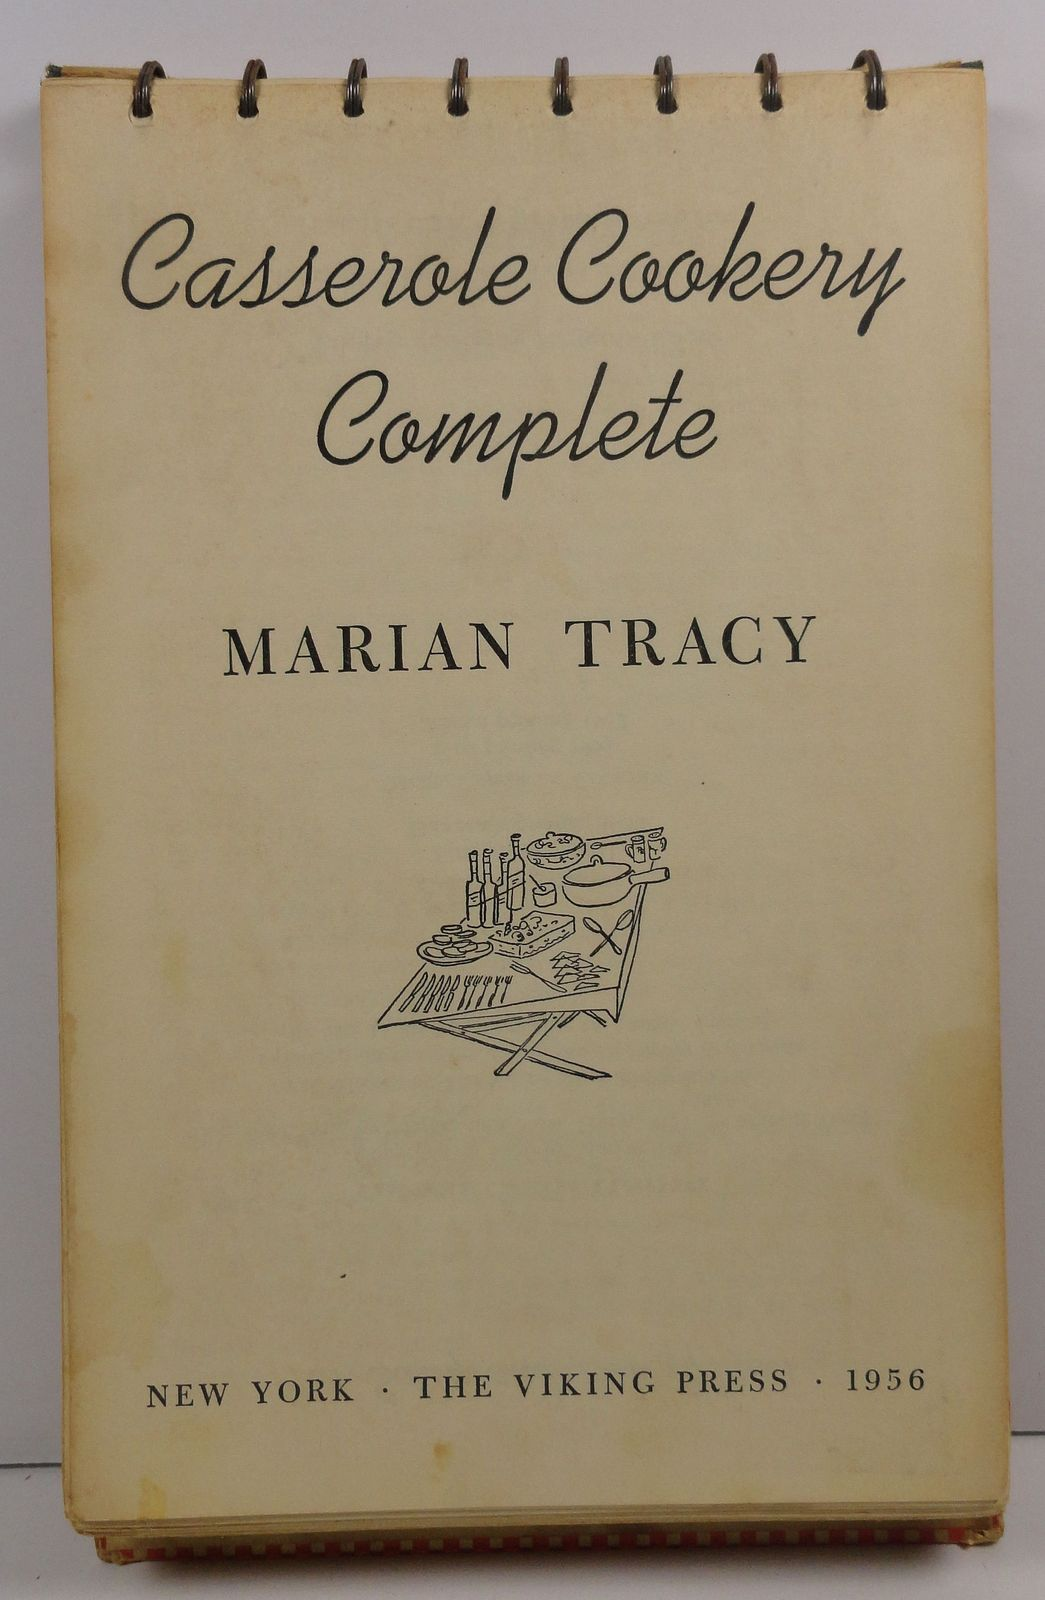 Marian Tracy's Casserole Cookery Complete 1956 Viking Press